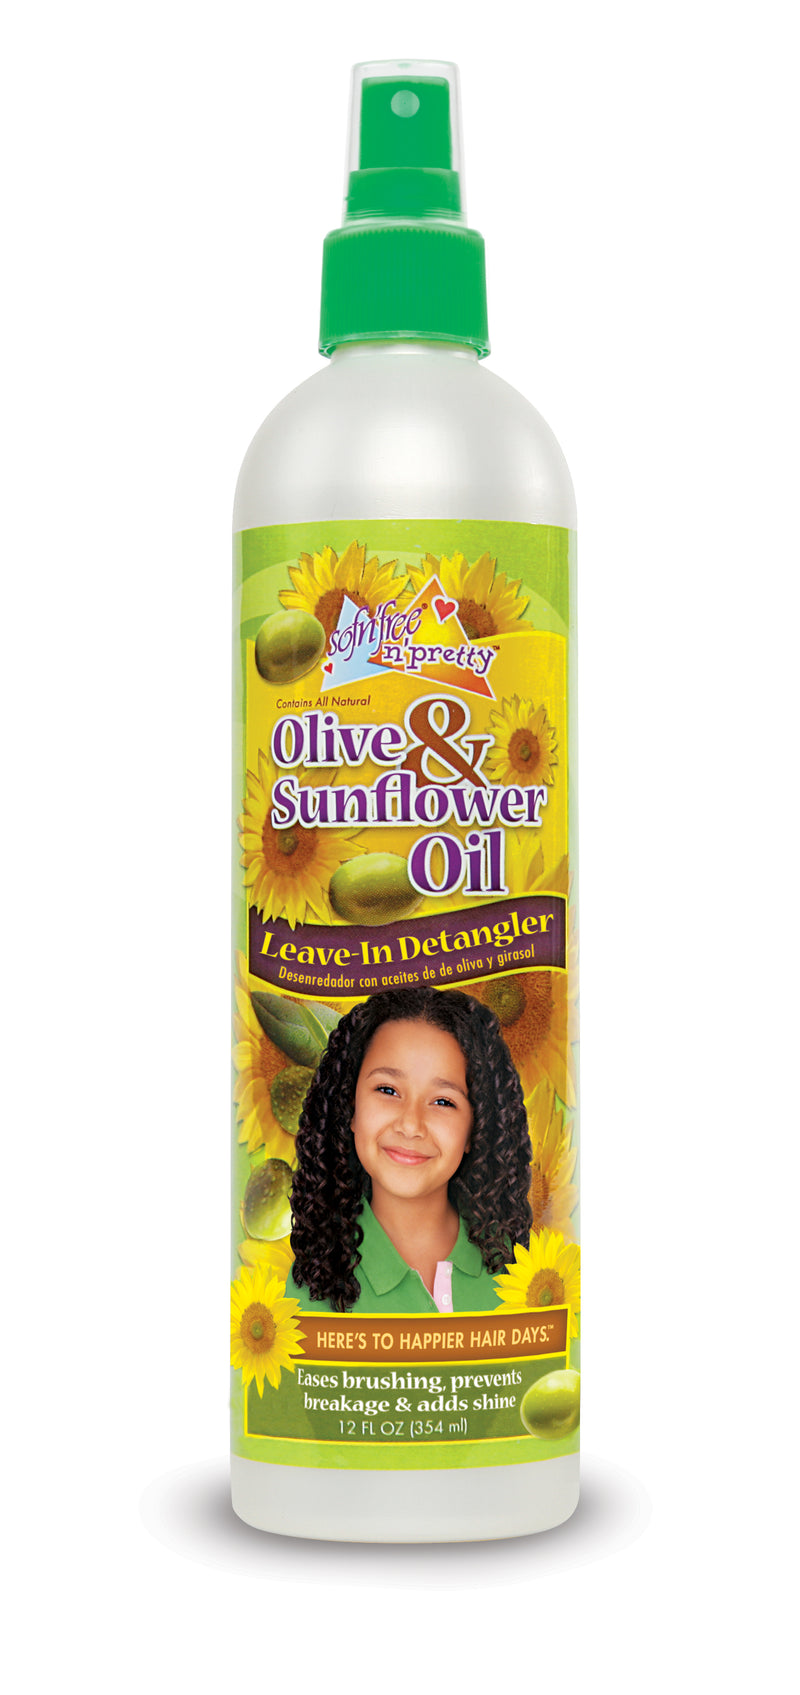 Olive & Sunflower Leave-In Detangler